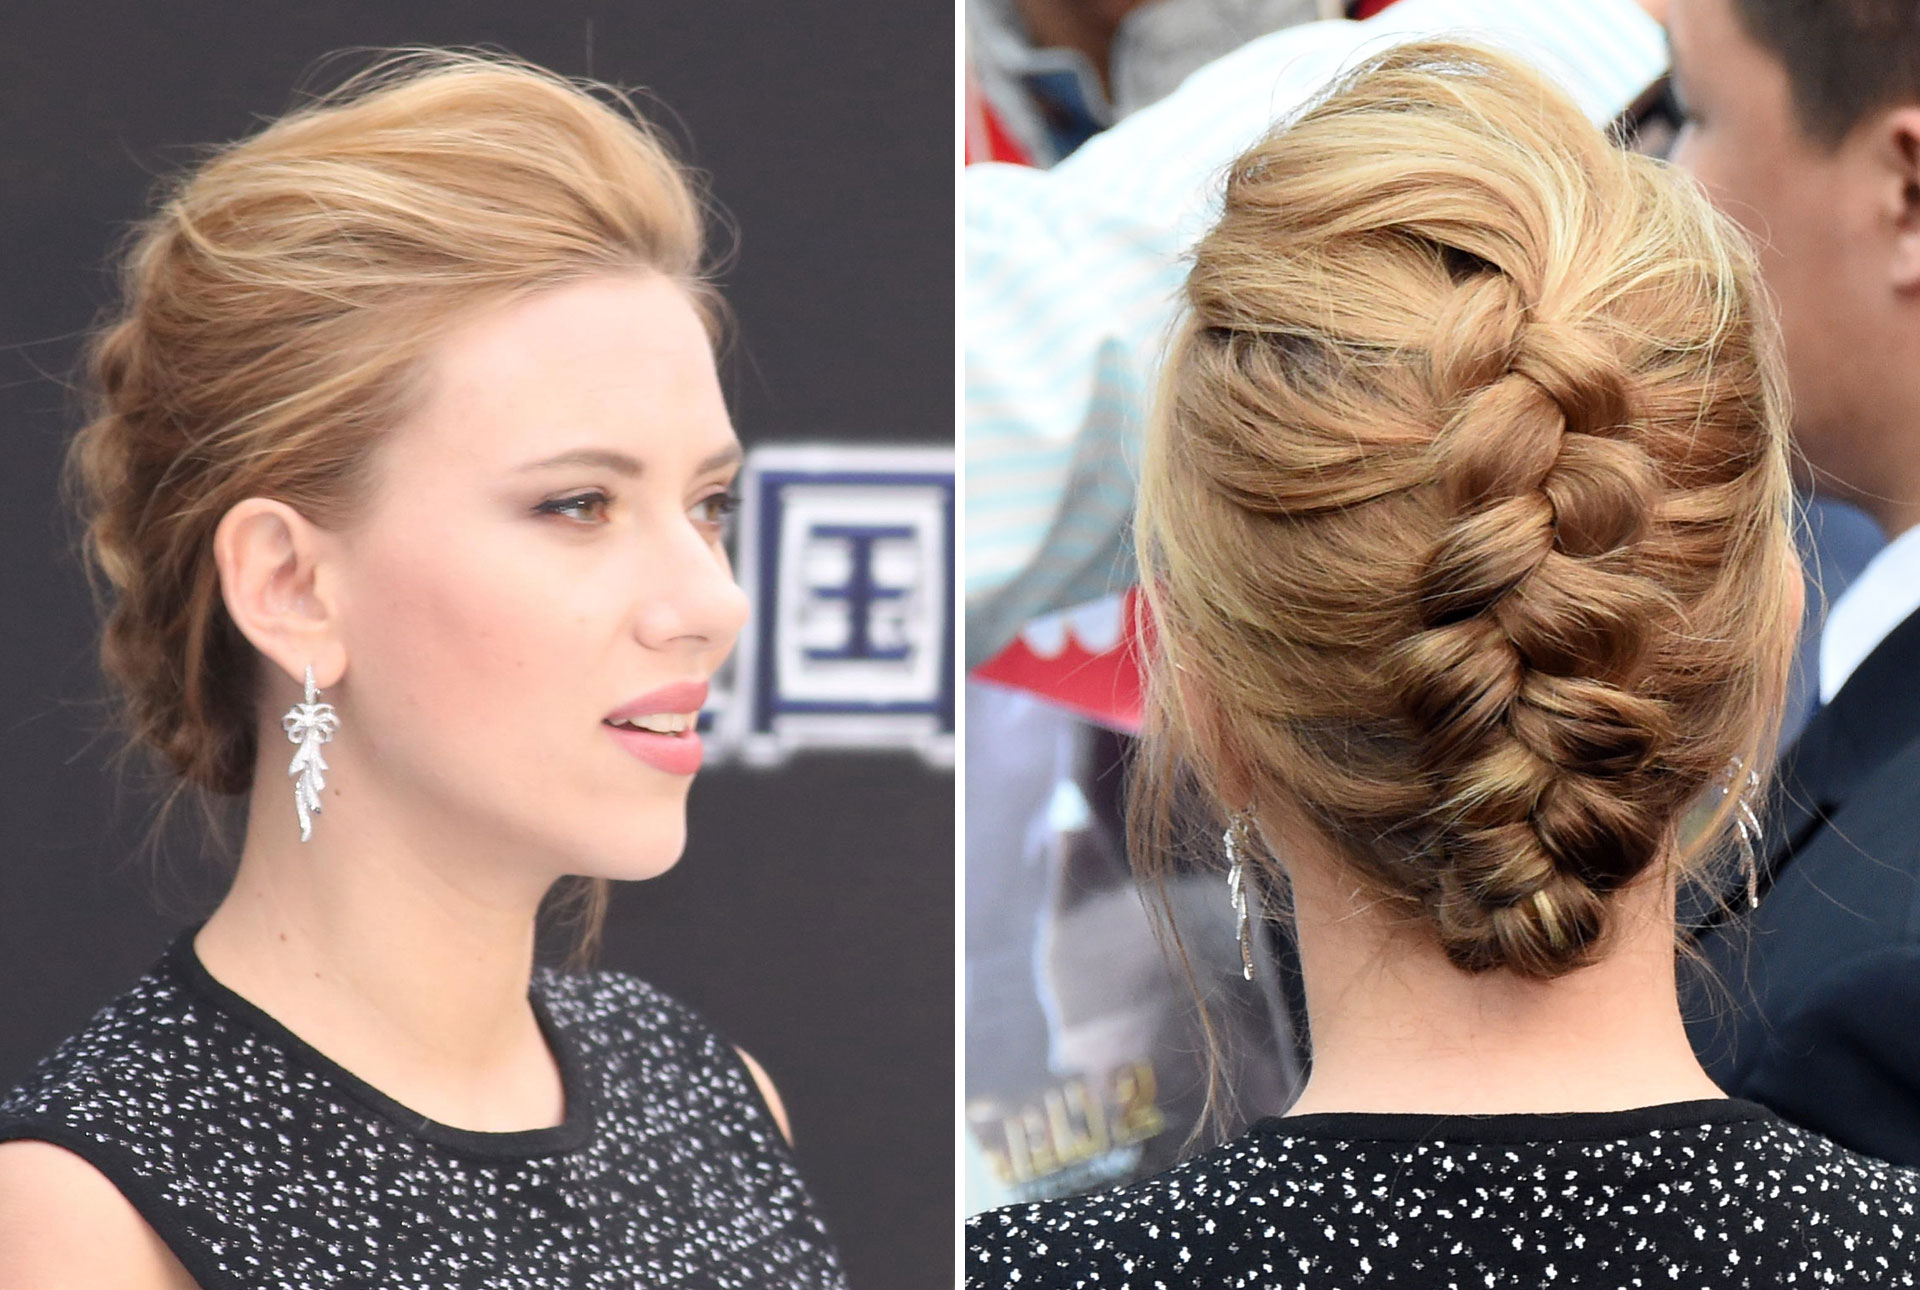 Enjoyable Guest Hairstyles For Every Kind Of Wedding Wedding Guest Hairstyles Short Hairstyles Gunalazisus